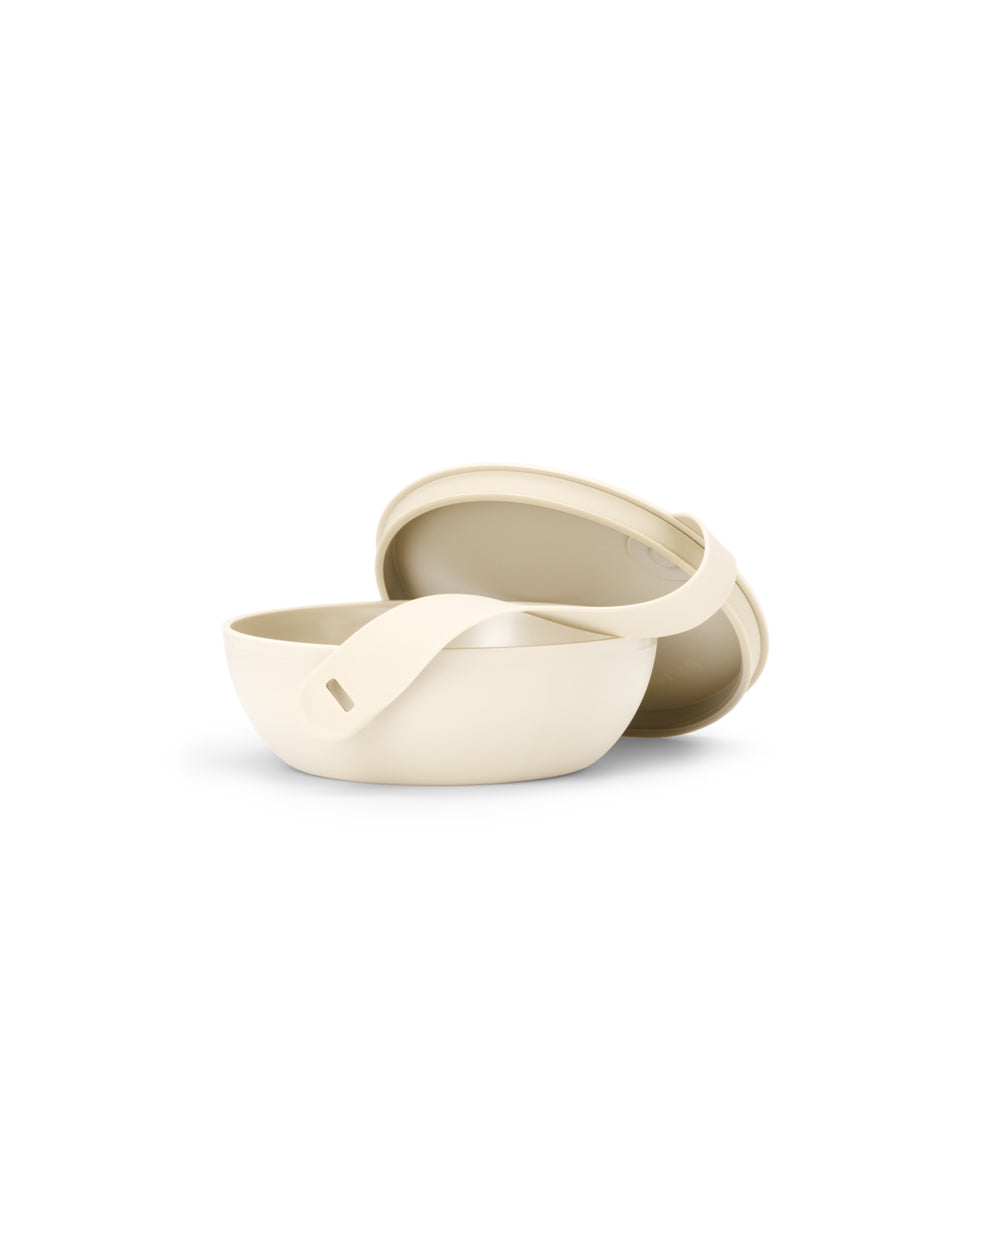 Porter - Bowl Plastic - Cream